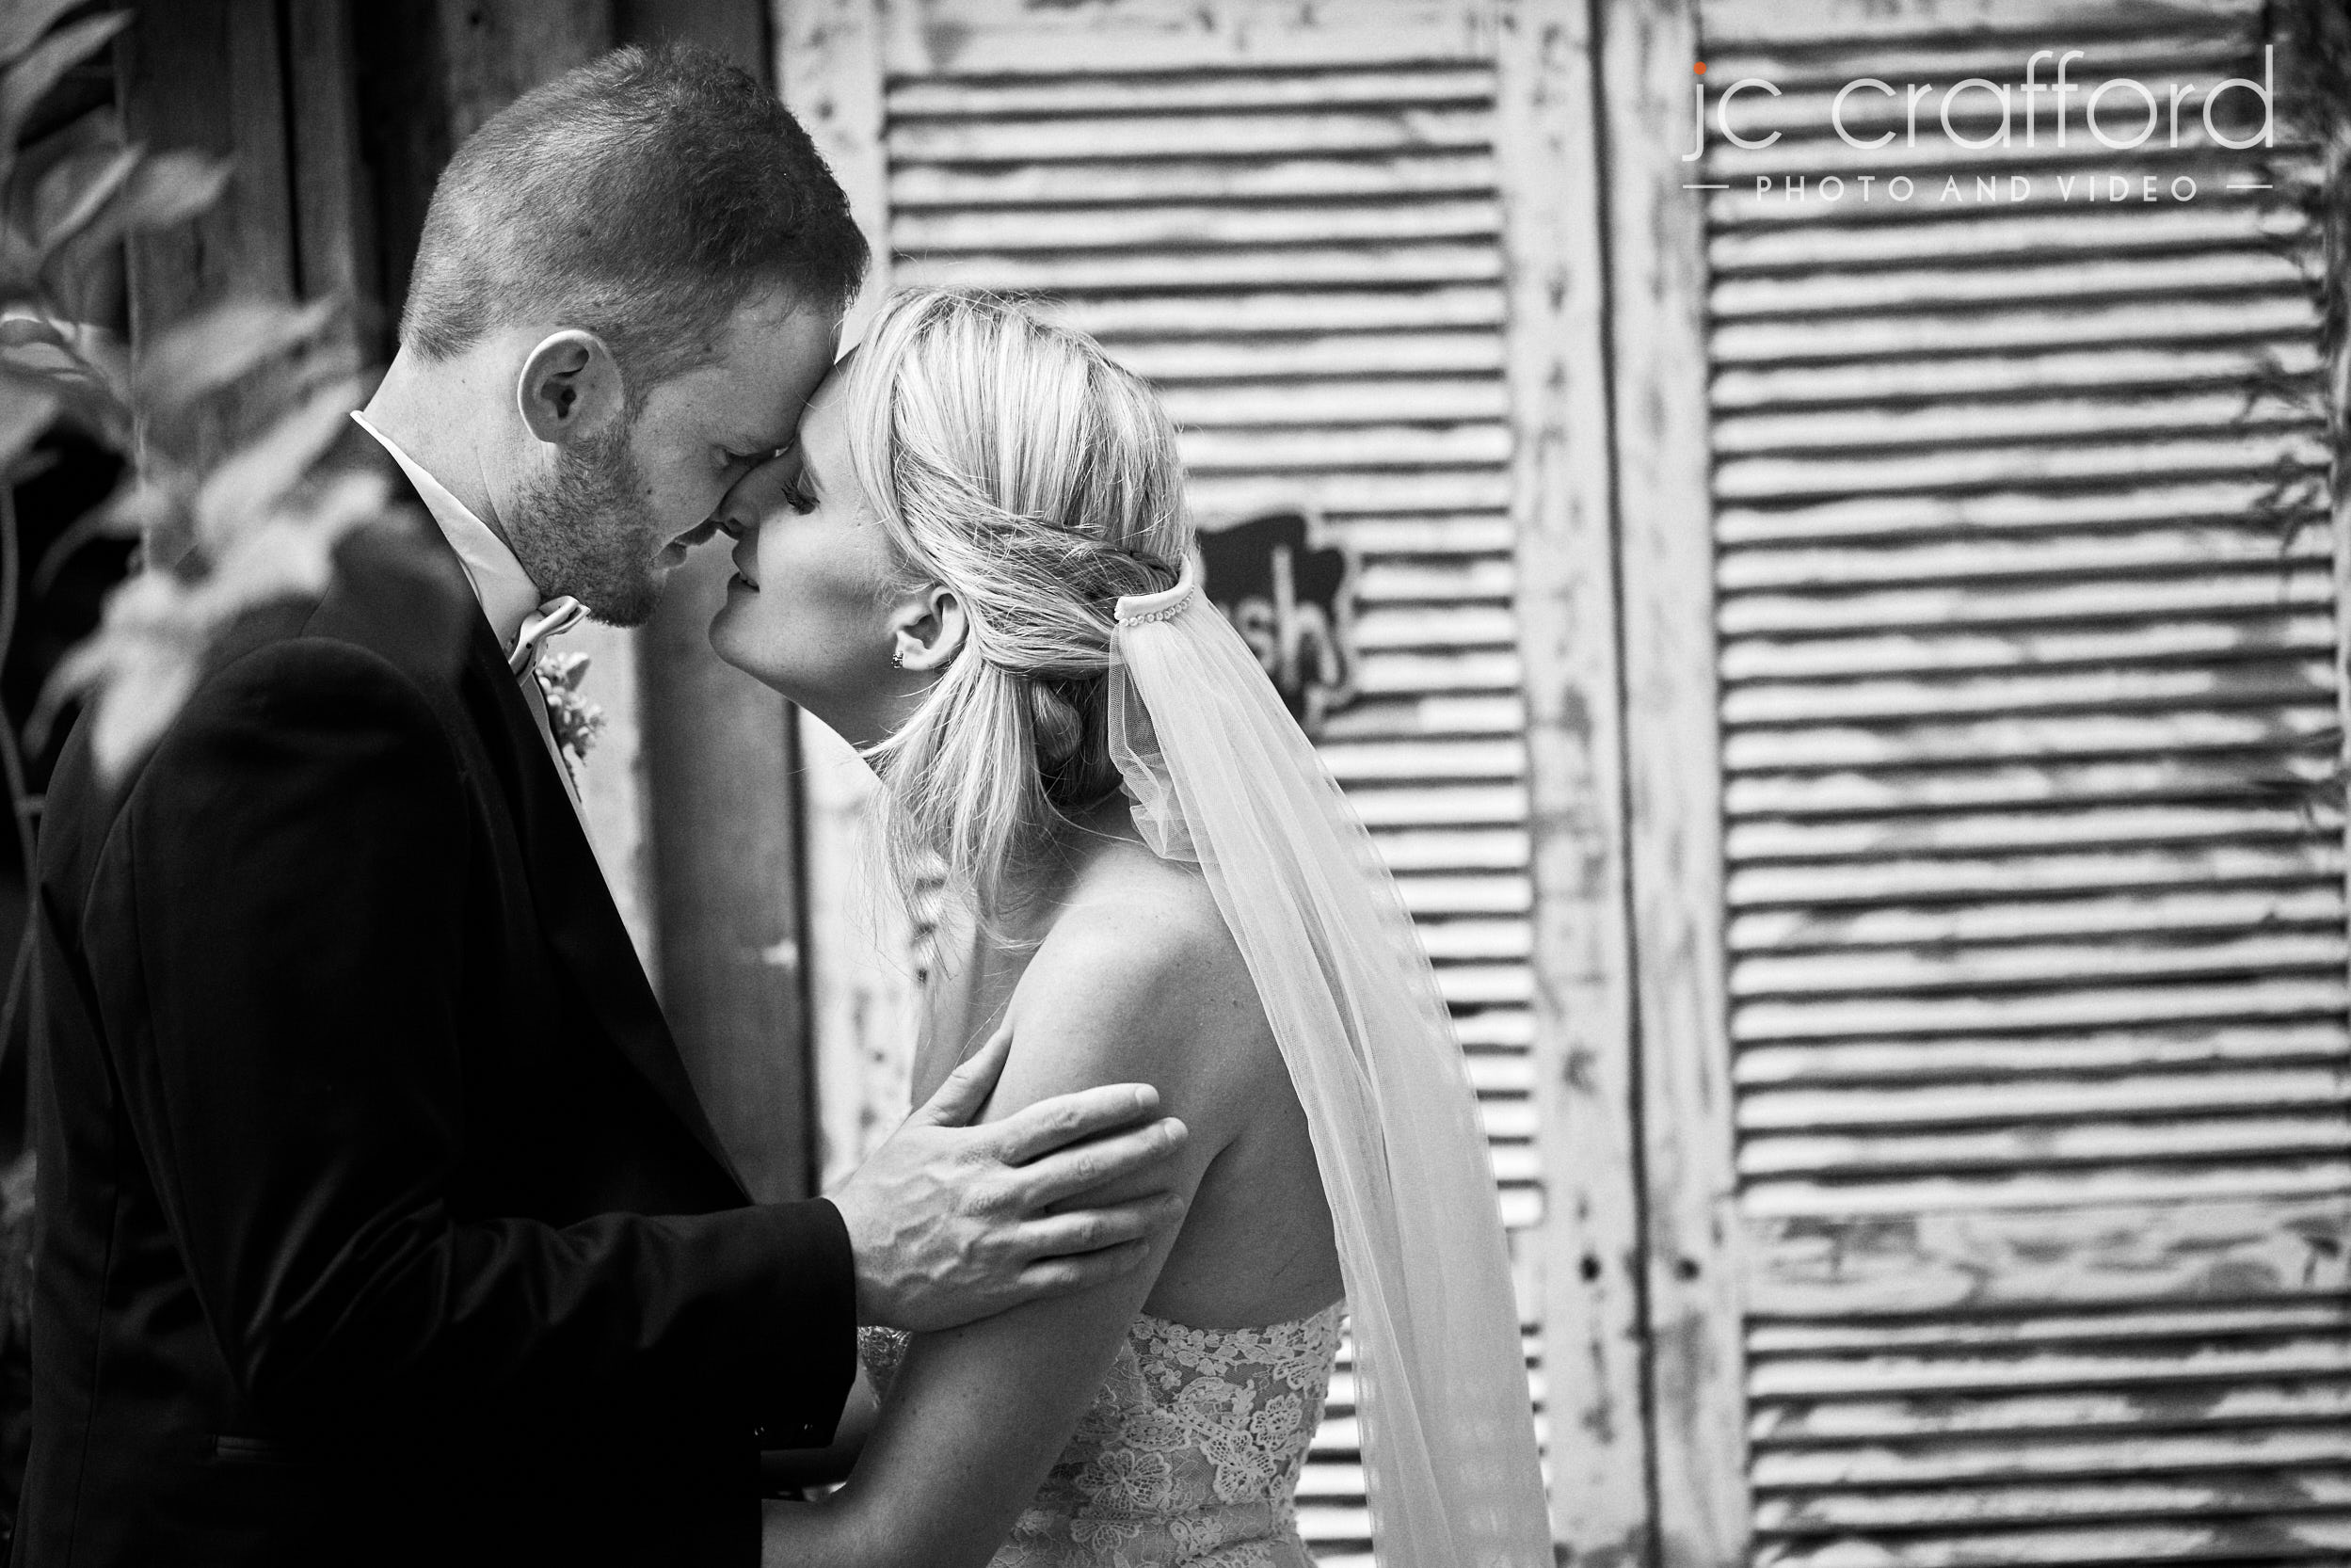 JC Crafford Photo and Video Wedding Photography at Venue Nouveau in Pretoria SB